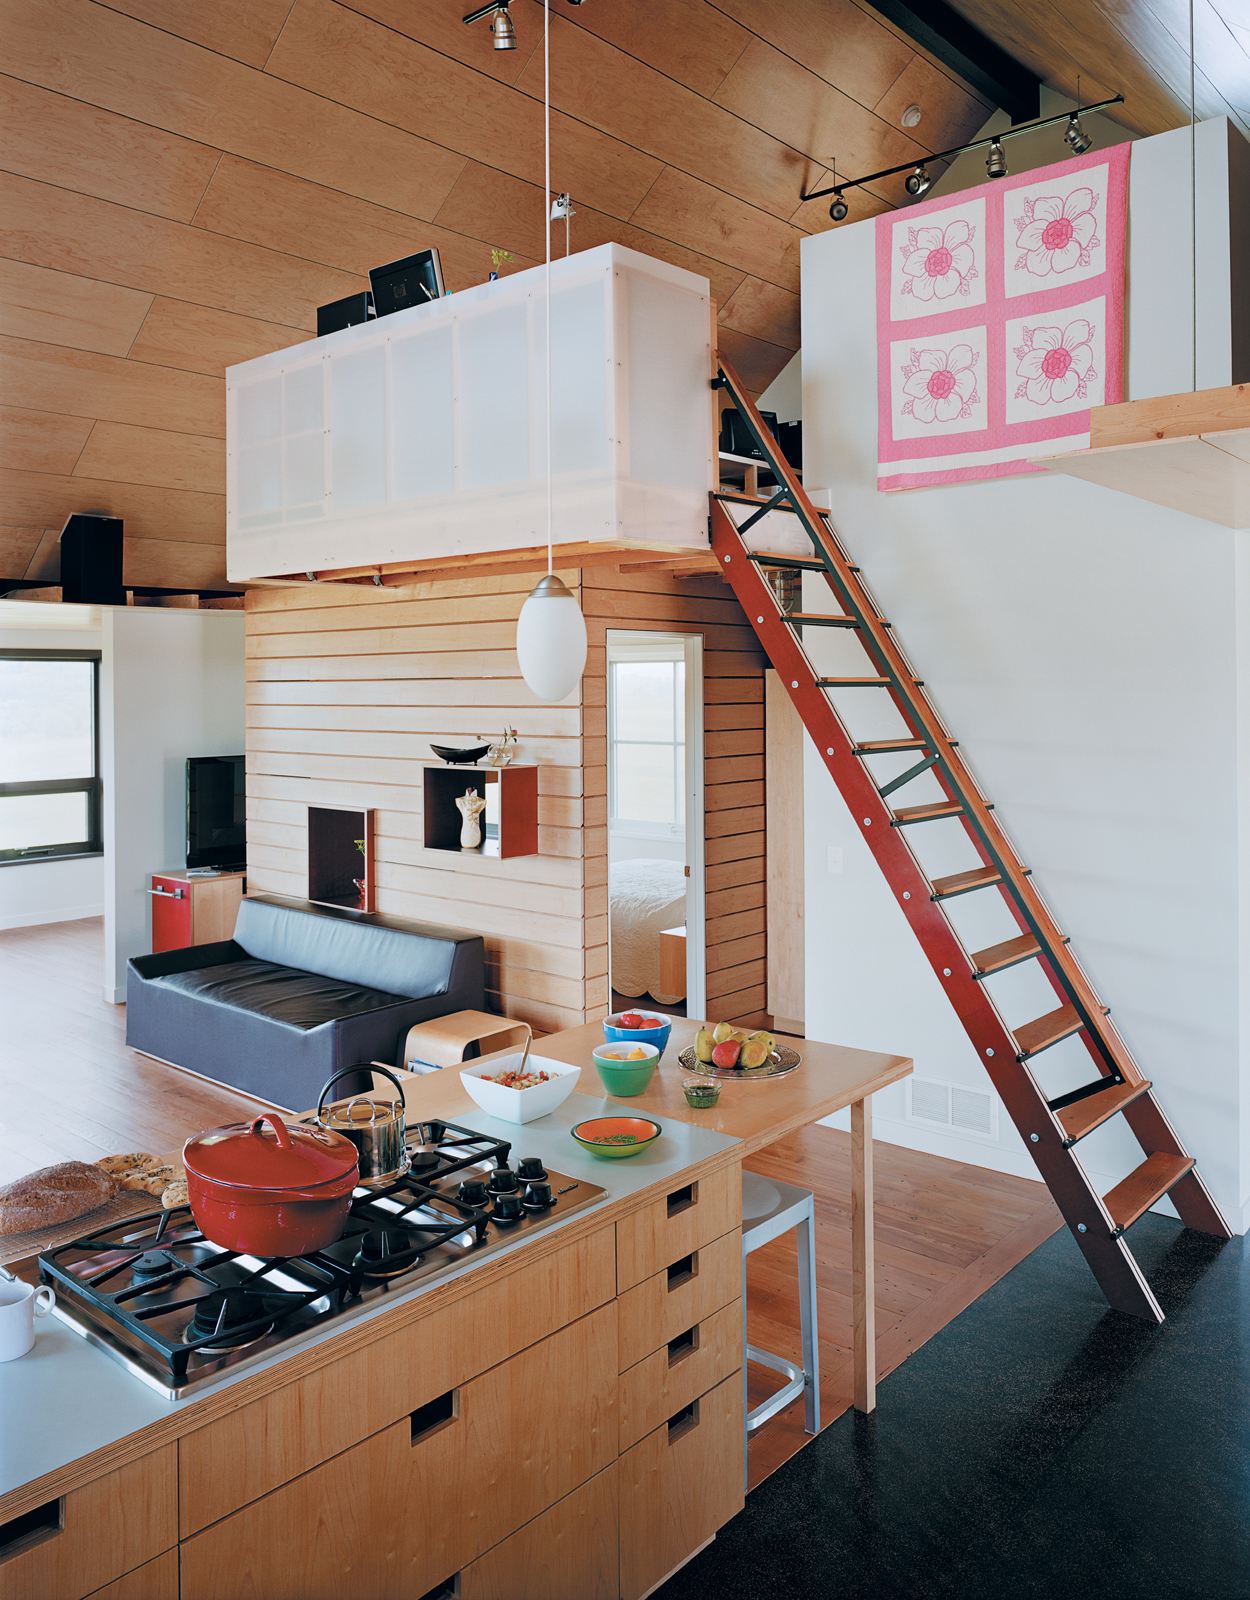 yum yum farm house kitchen storage space ladder